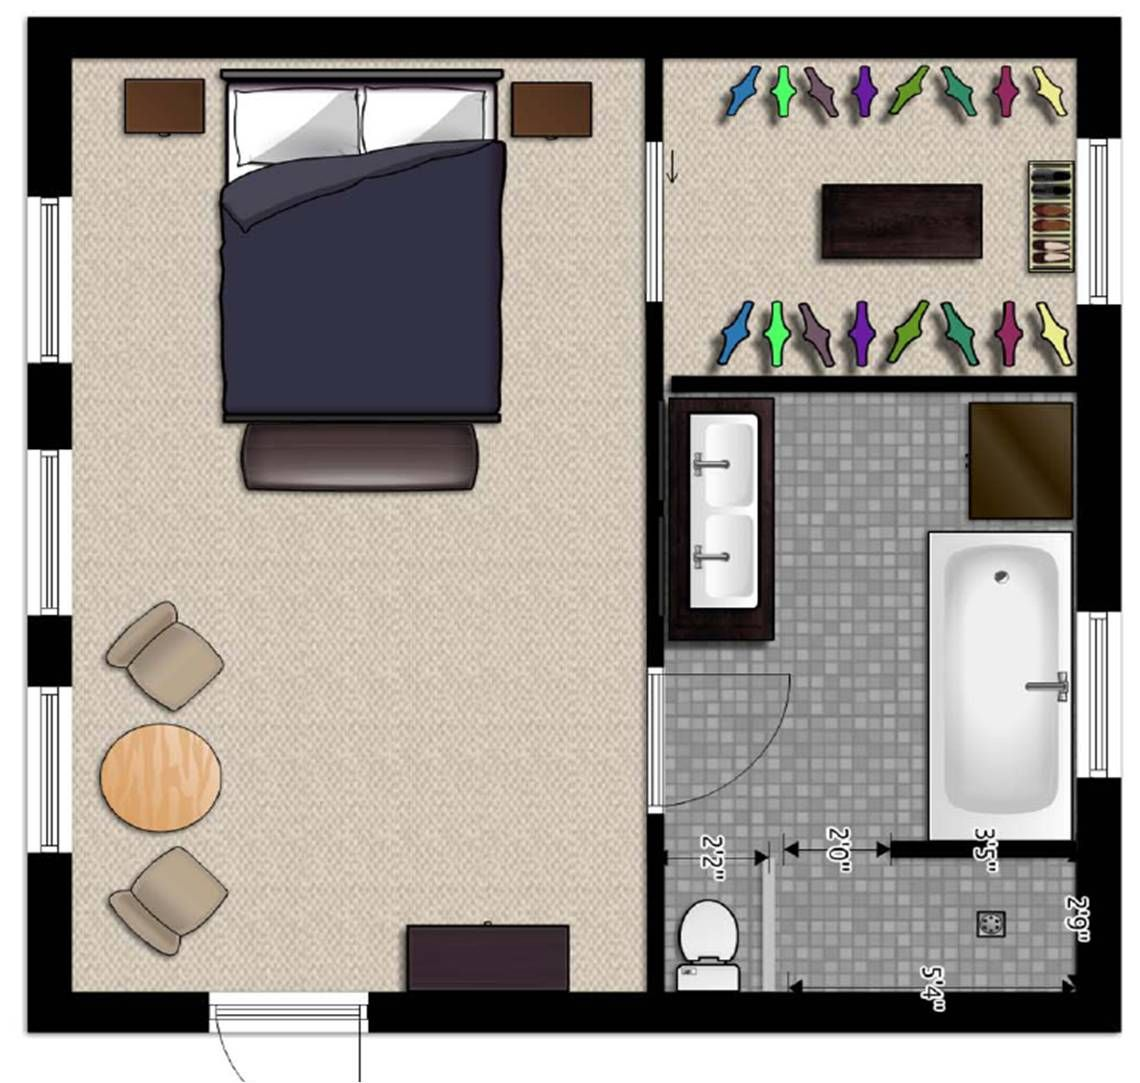 Master Bedroom Layout Ideas Plans master bedroom addition floor plans | and here is the proposed